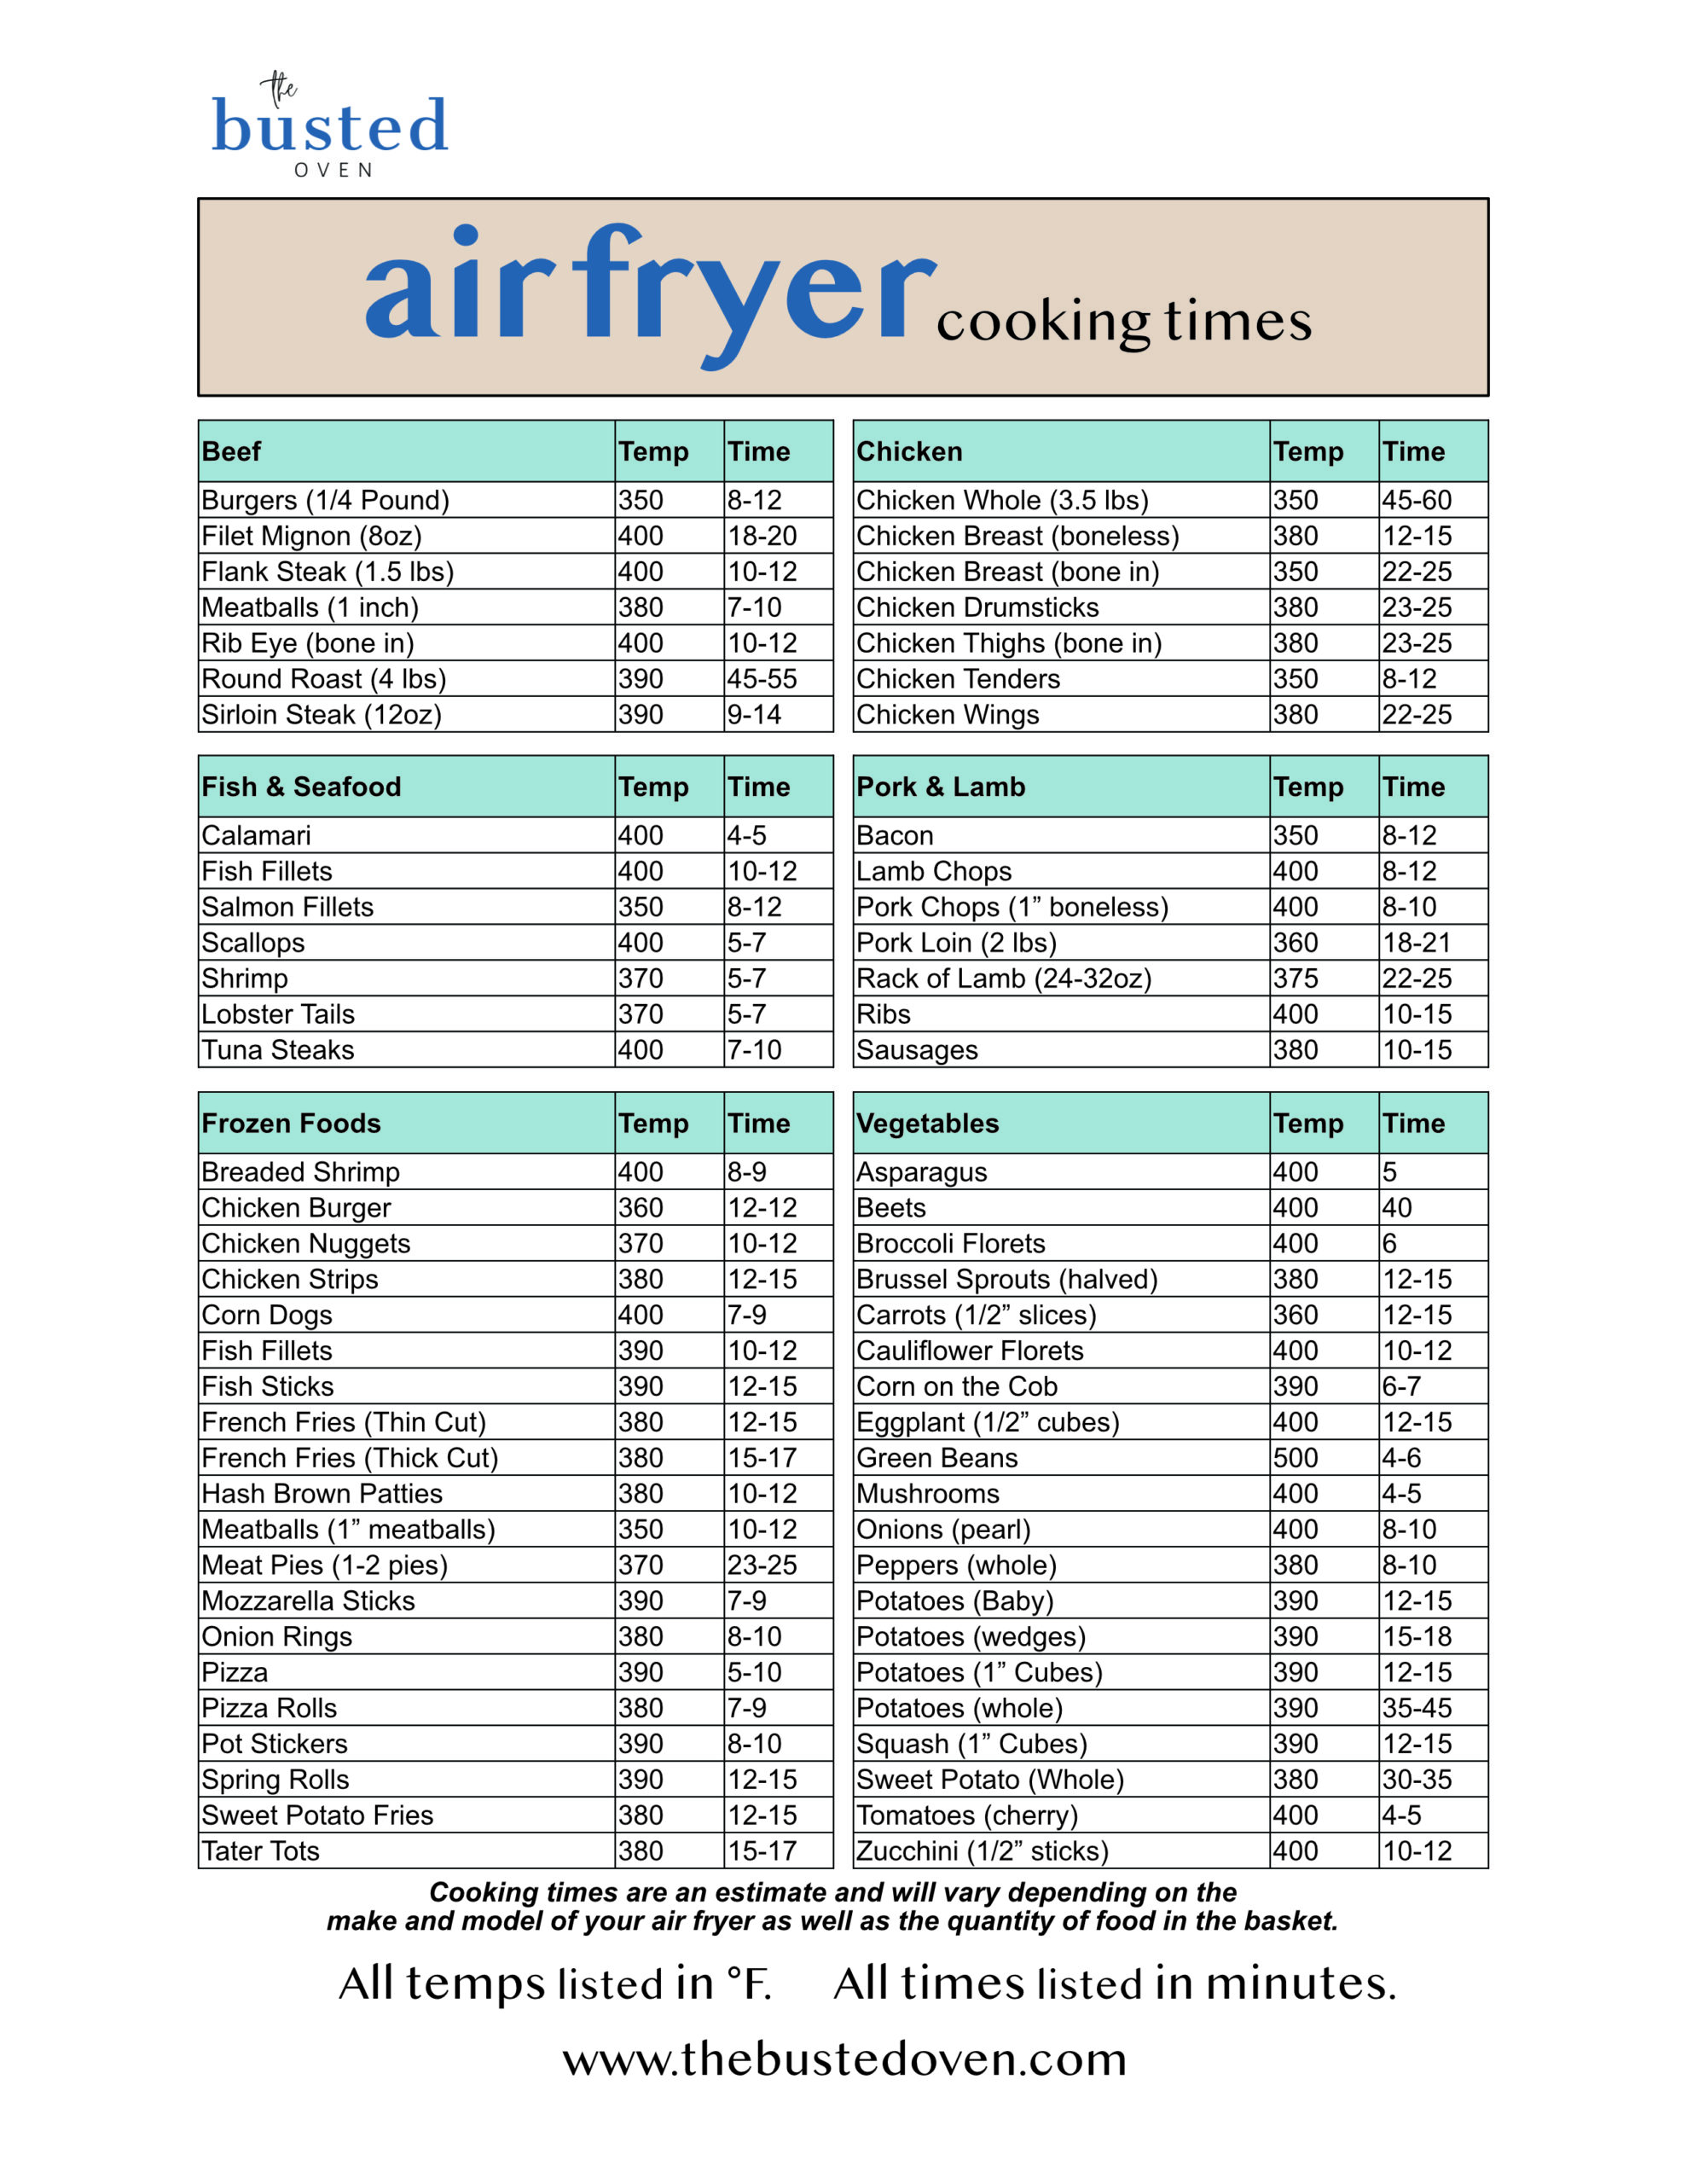 A chart of air fryer cook times for common items.